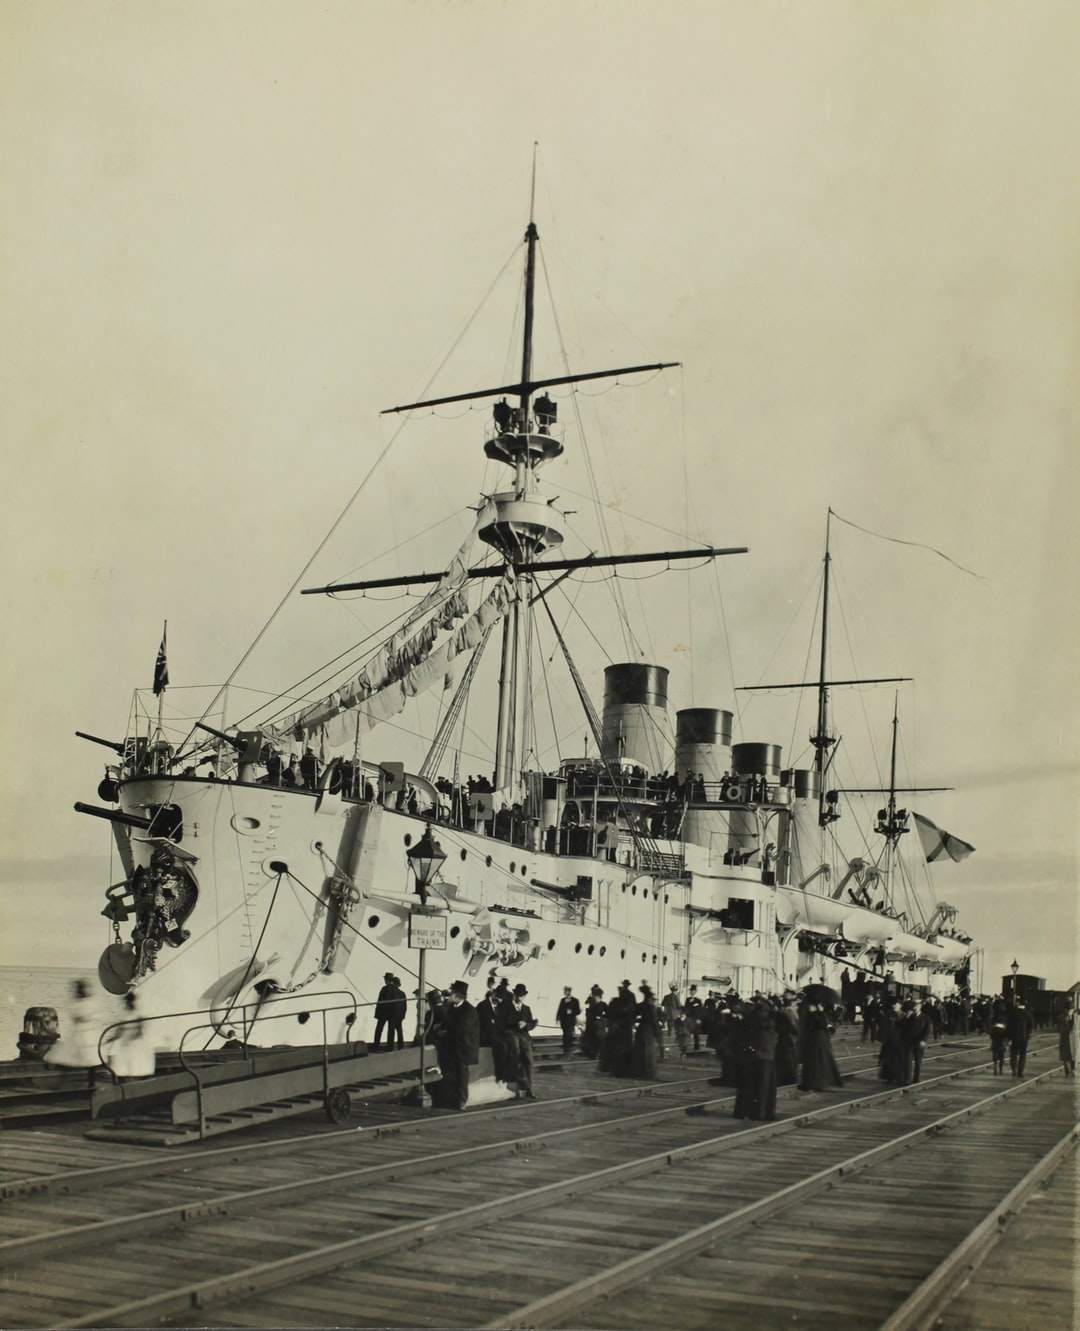 Federation Celebrations, 'The Russian Cruiser Cromoboi Lying at Port Melbourne Railway Pier', Melbourne, May1901